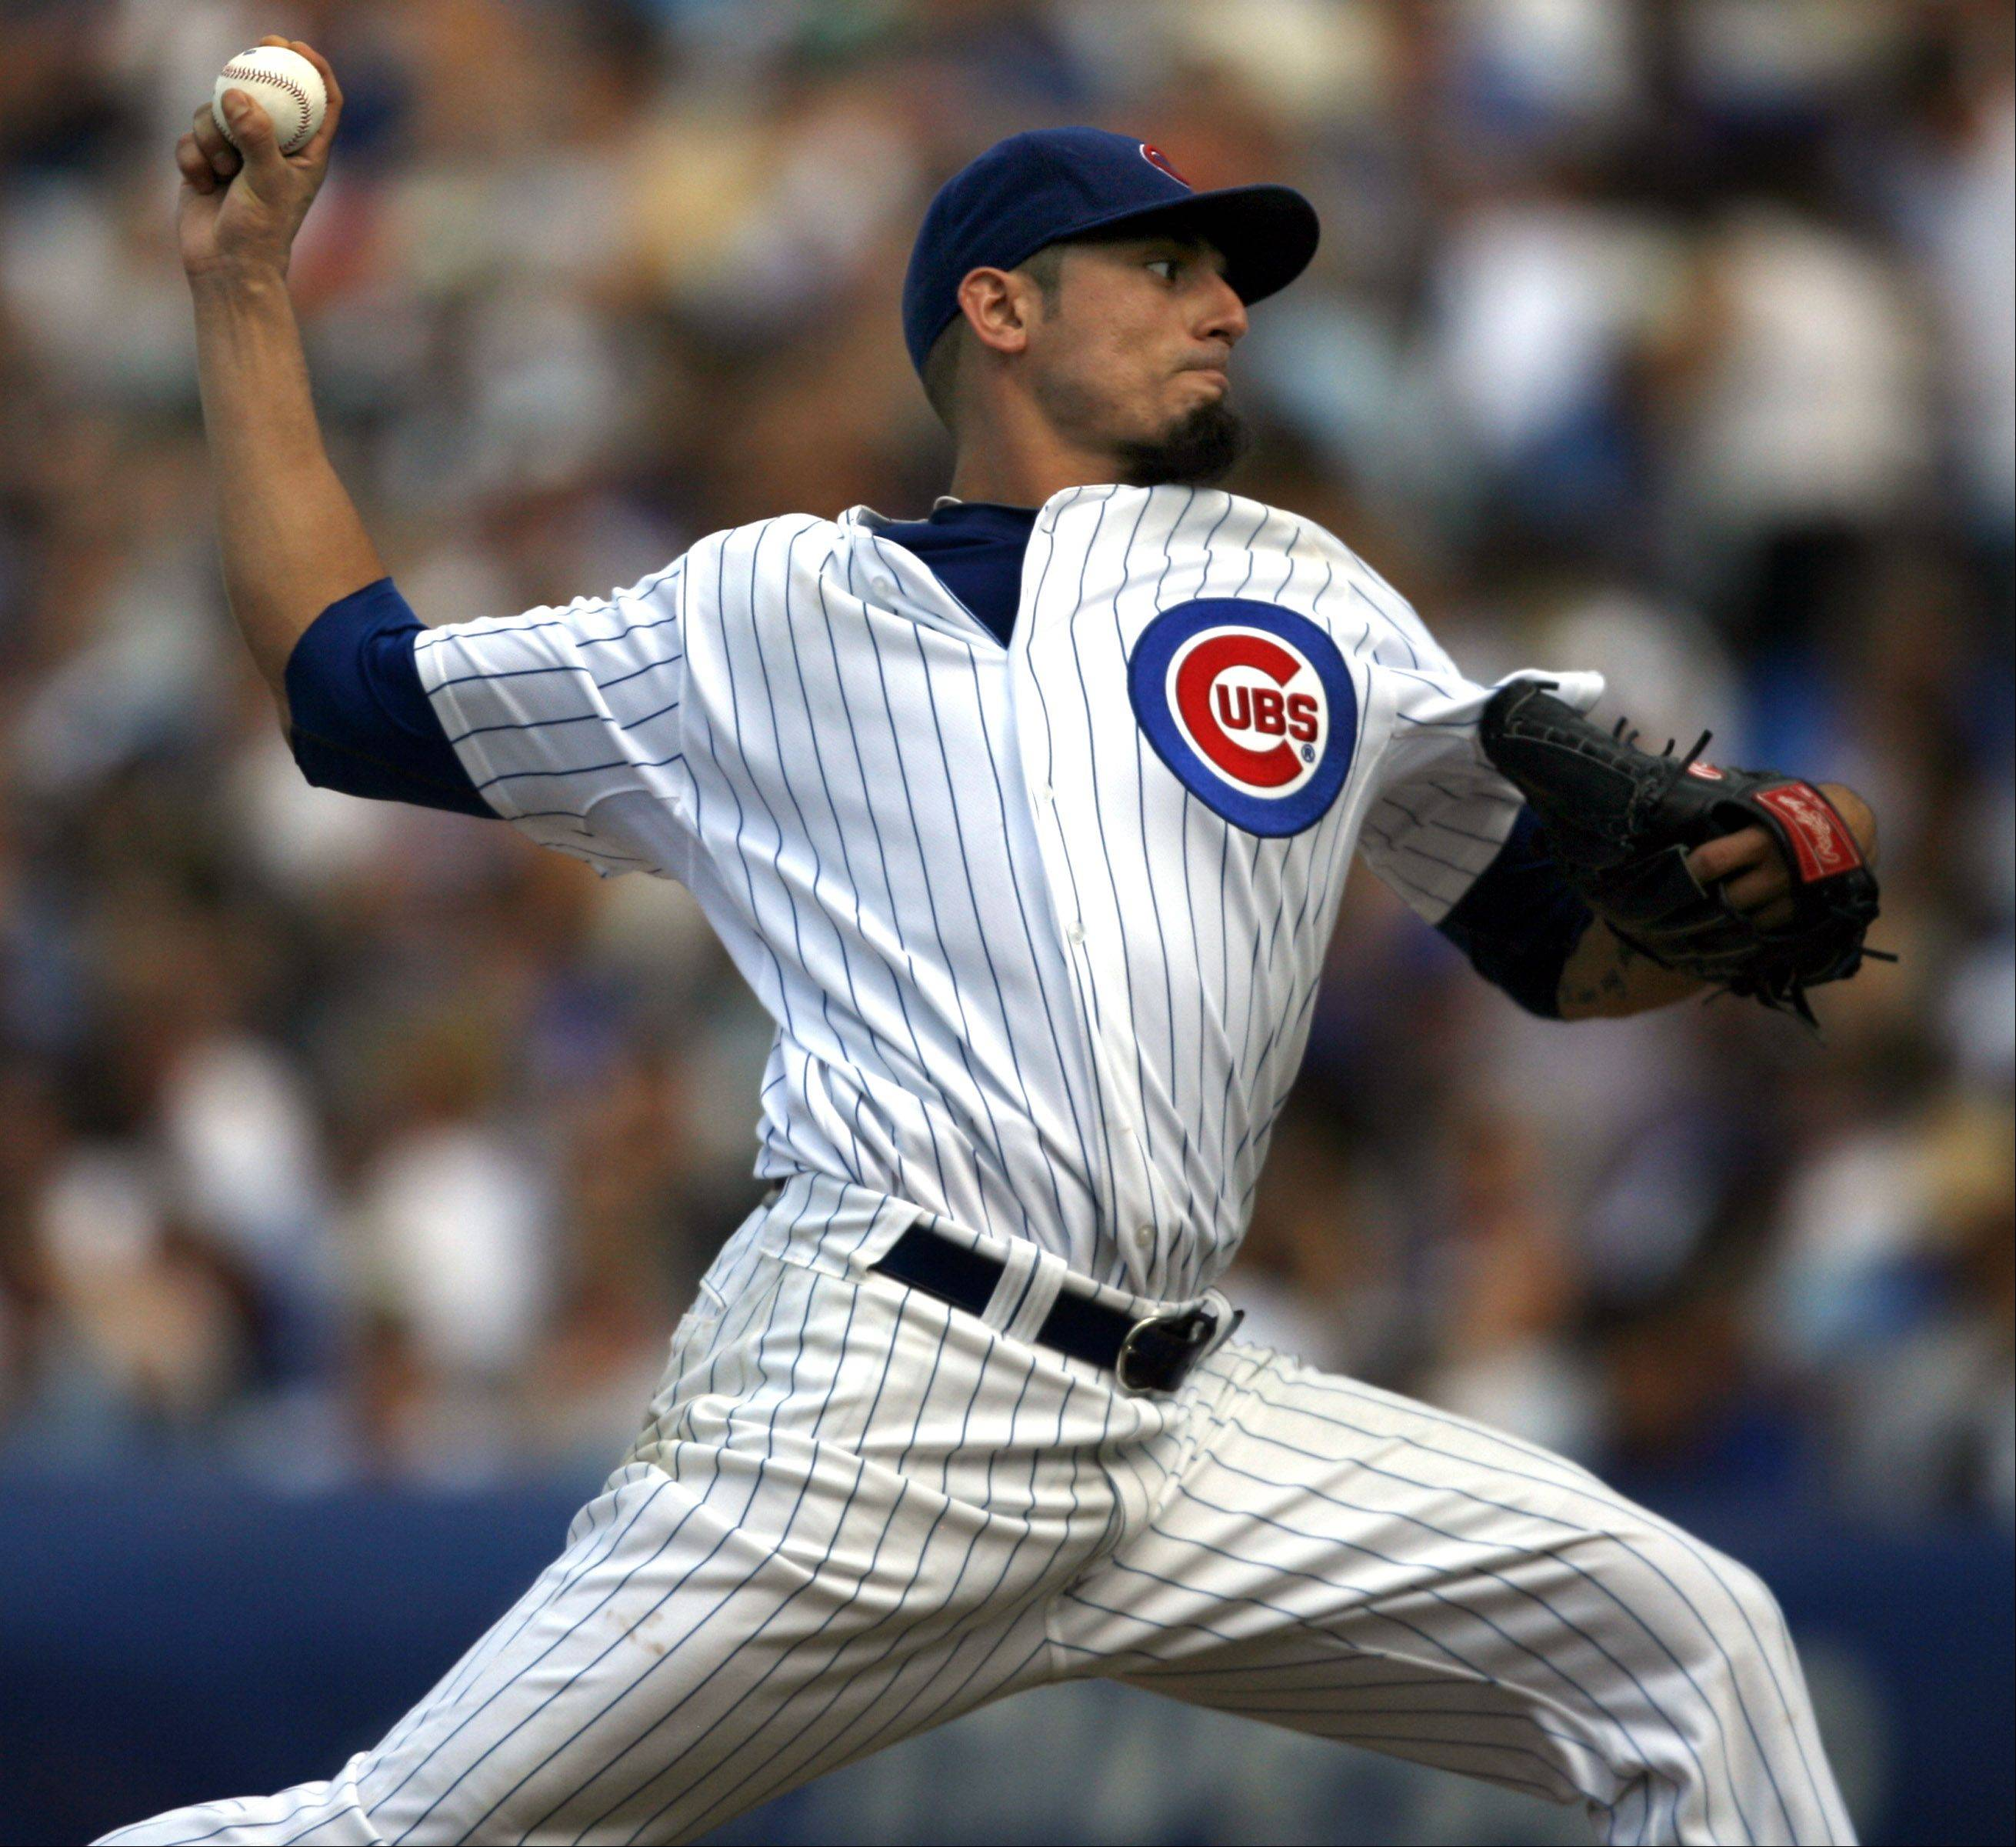 George LeClaire/gleclaire@dailyherald.com Cubs starter Matt Garza saw both his record and his ERA fall with Saturday�s 1-0 complete-game loss to the White Sox